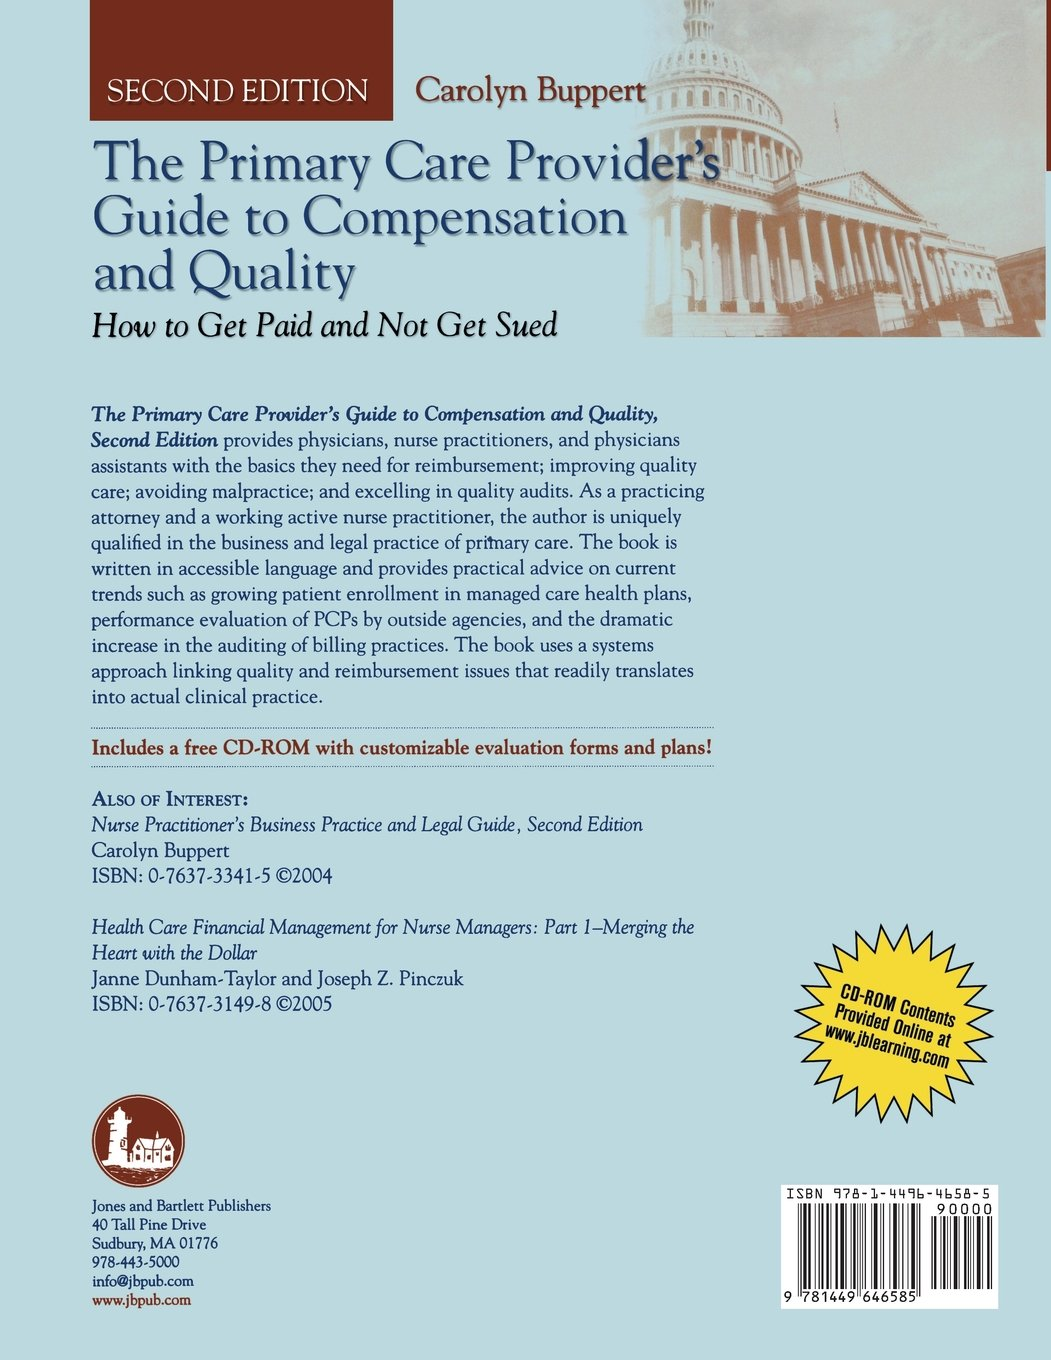 The Primary Care Provider's Guide to Compensation and Quality: Paperback edition